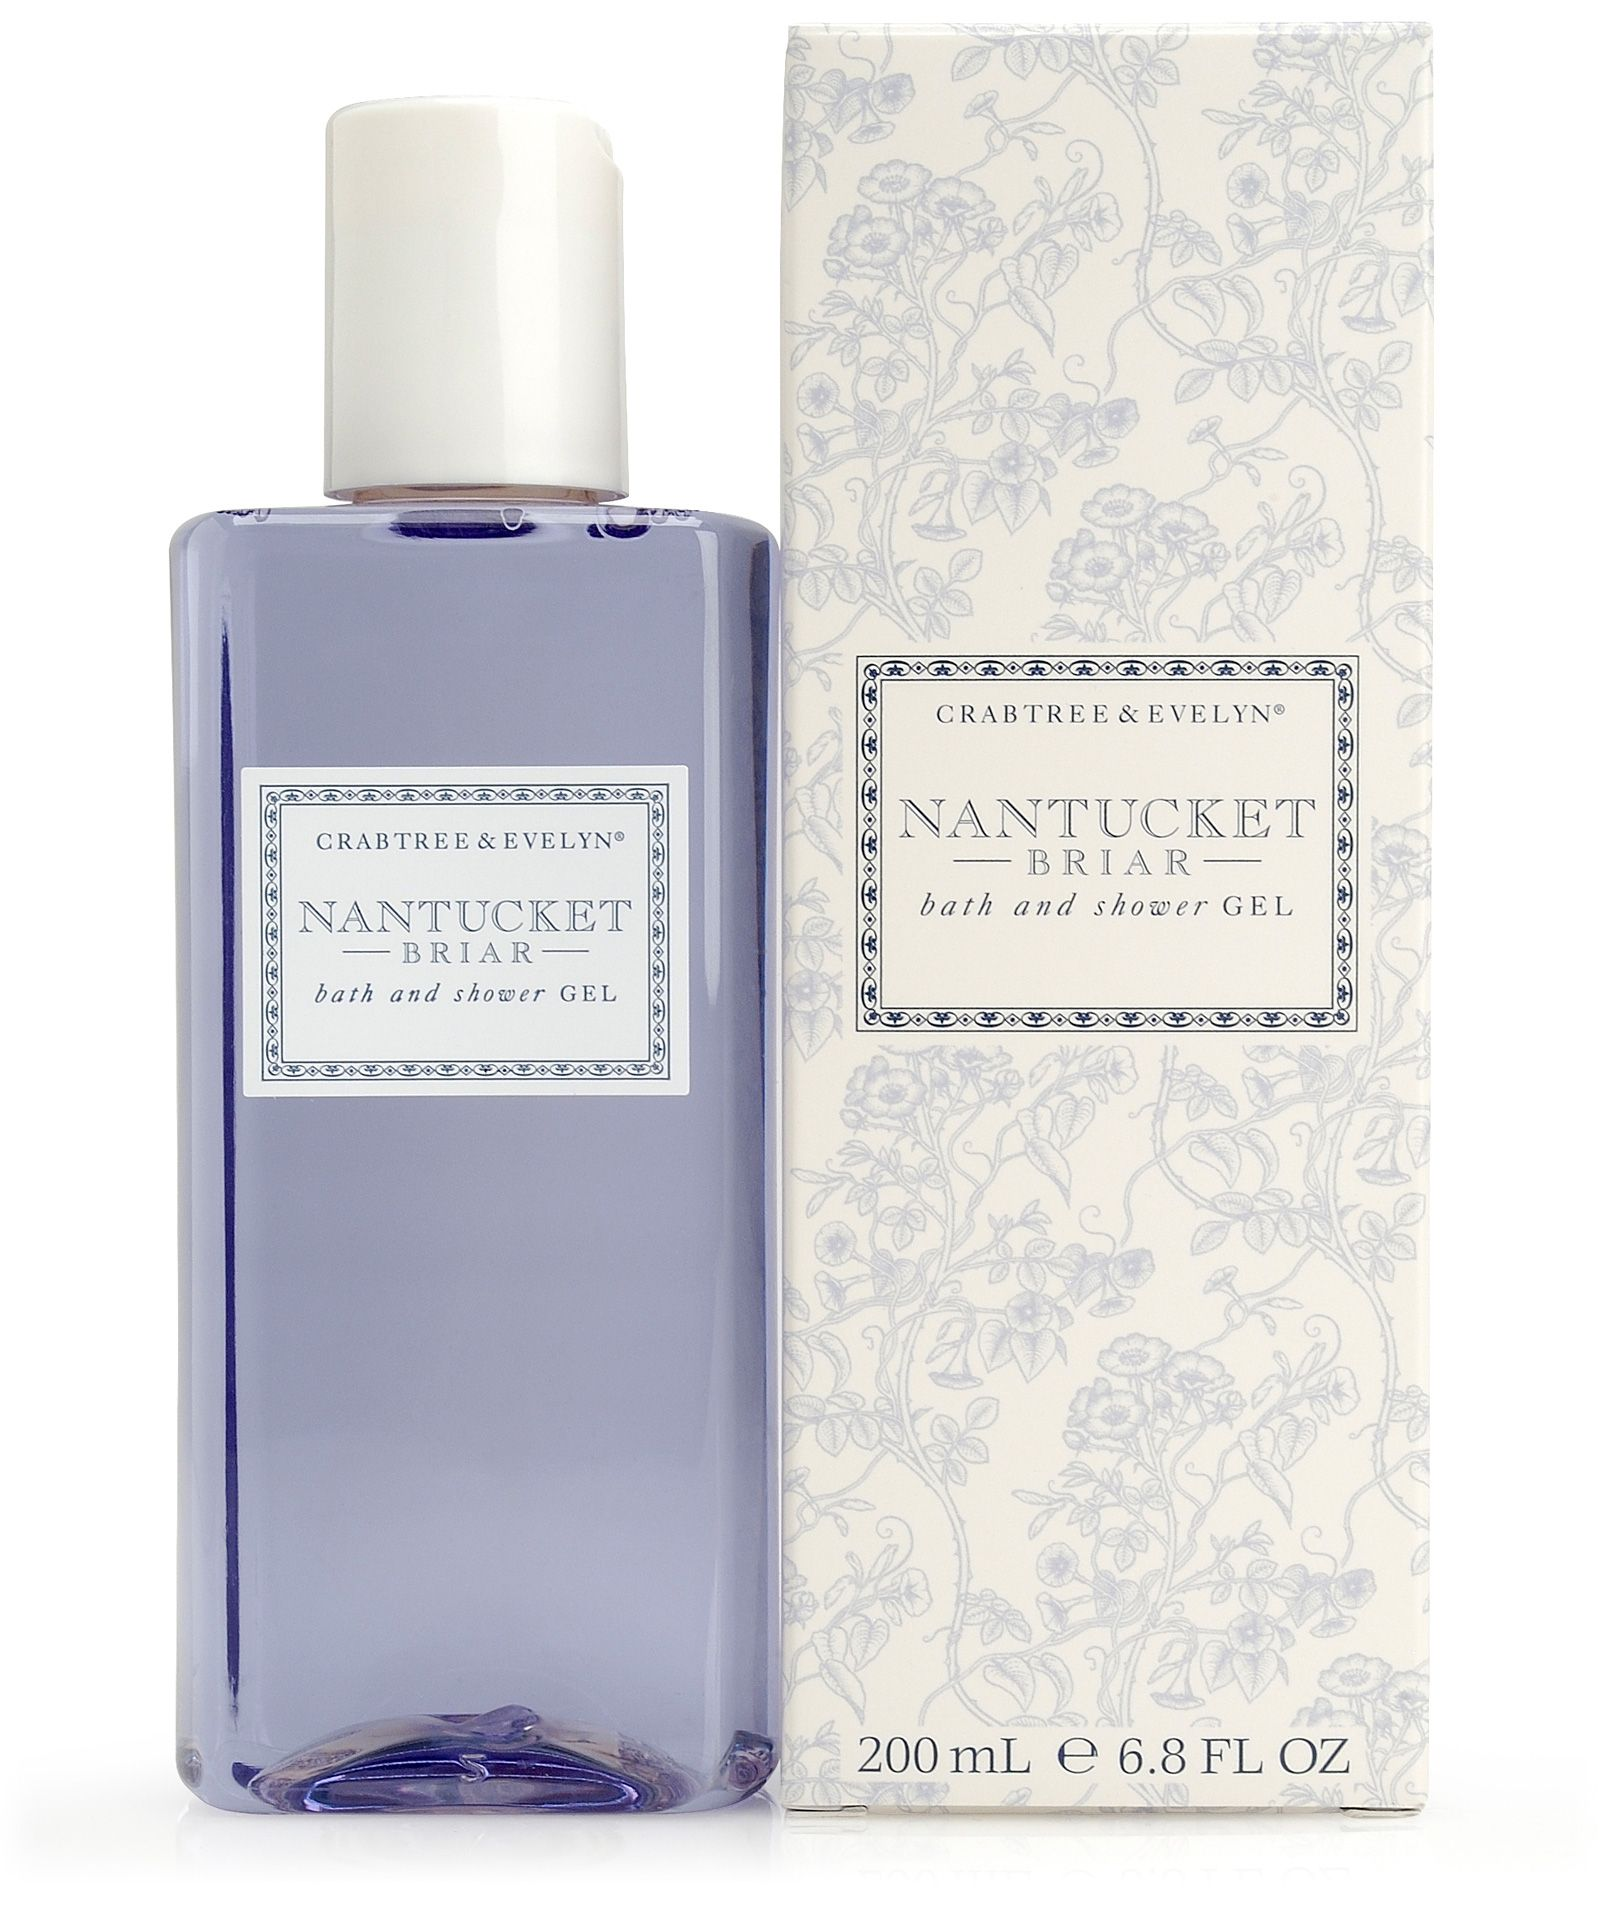 Nantucker Briar Bath & Shower Gel